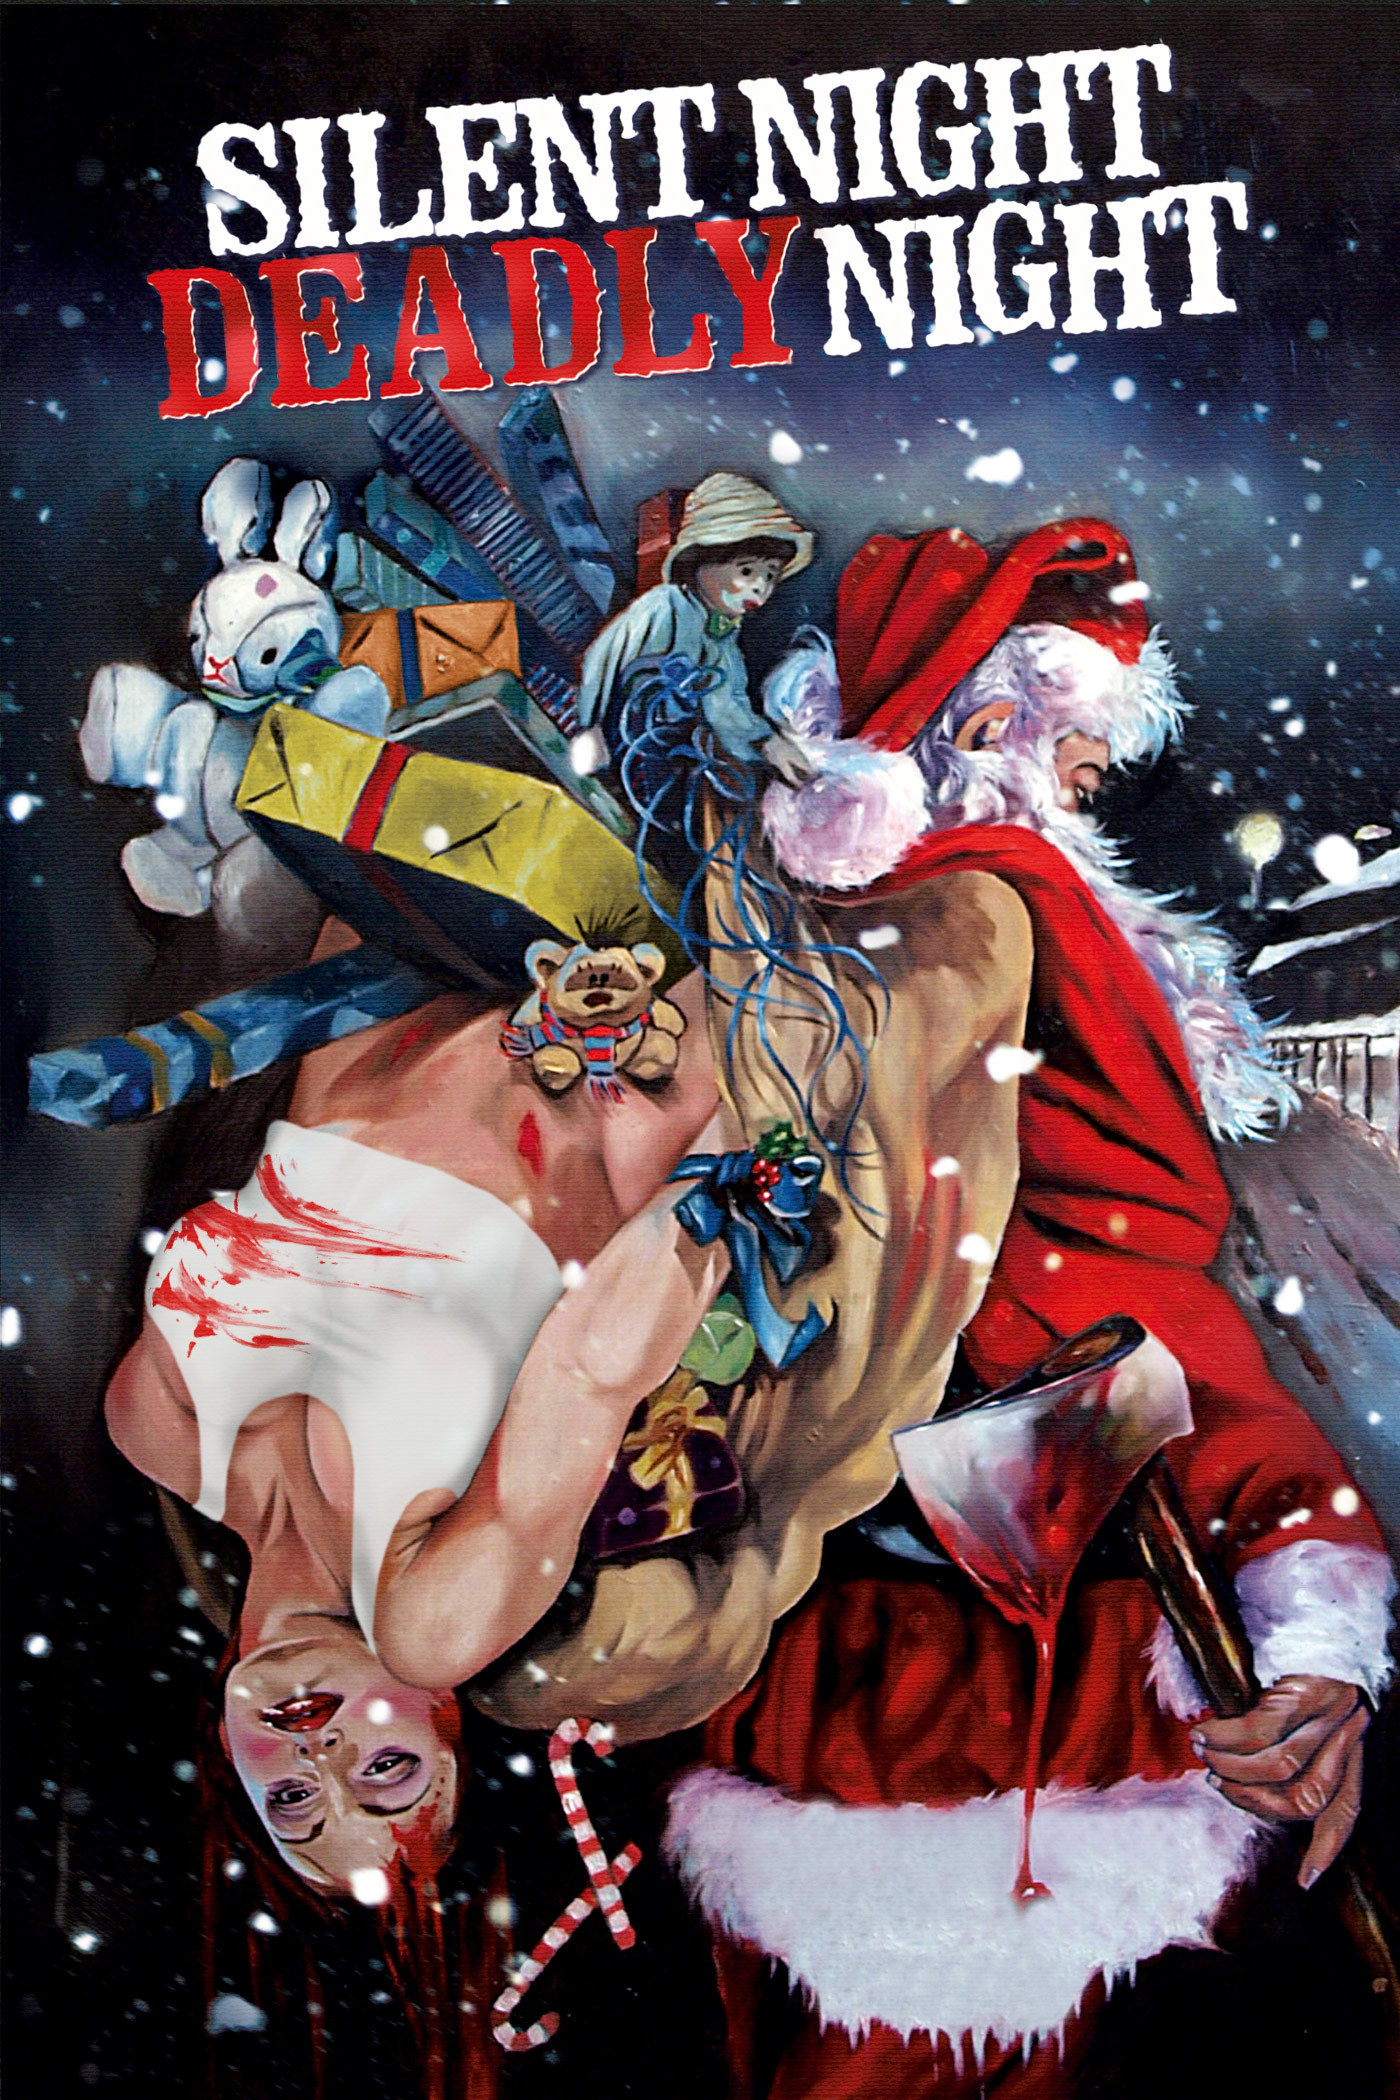 This is a poster for Silent Night, Deadly Night.